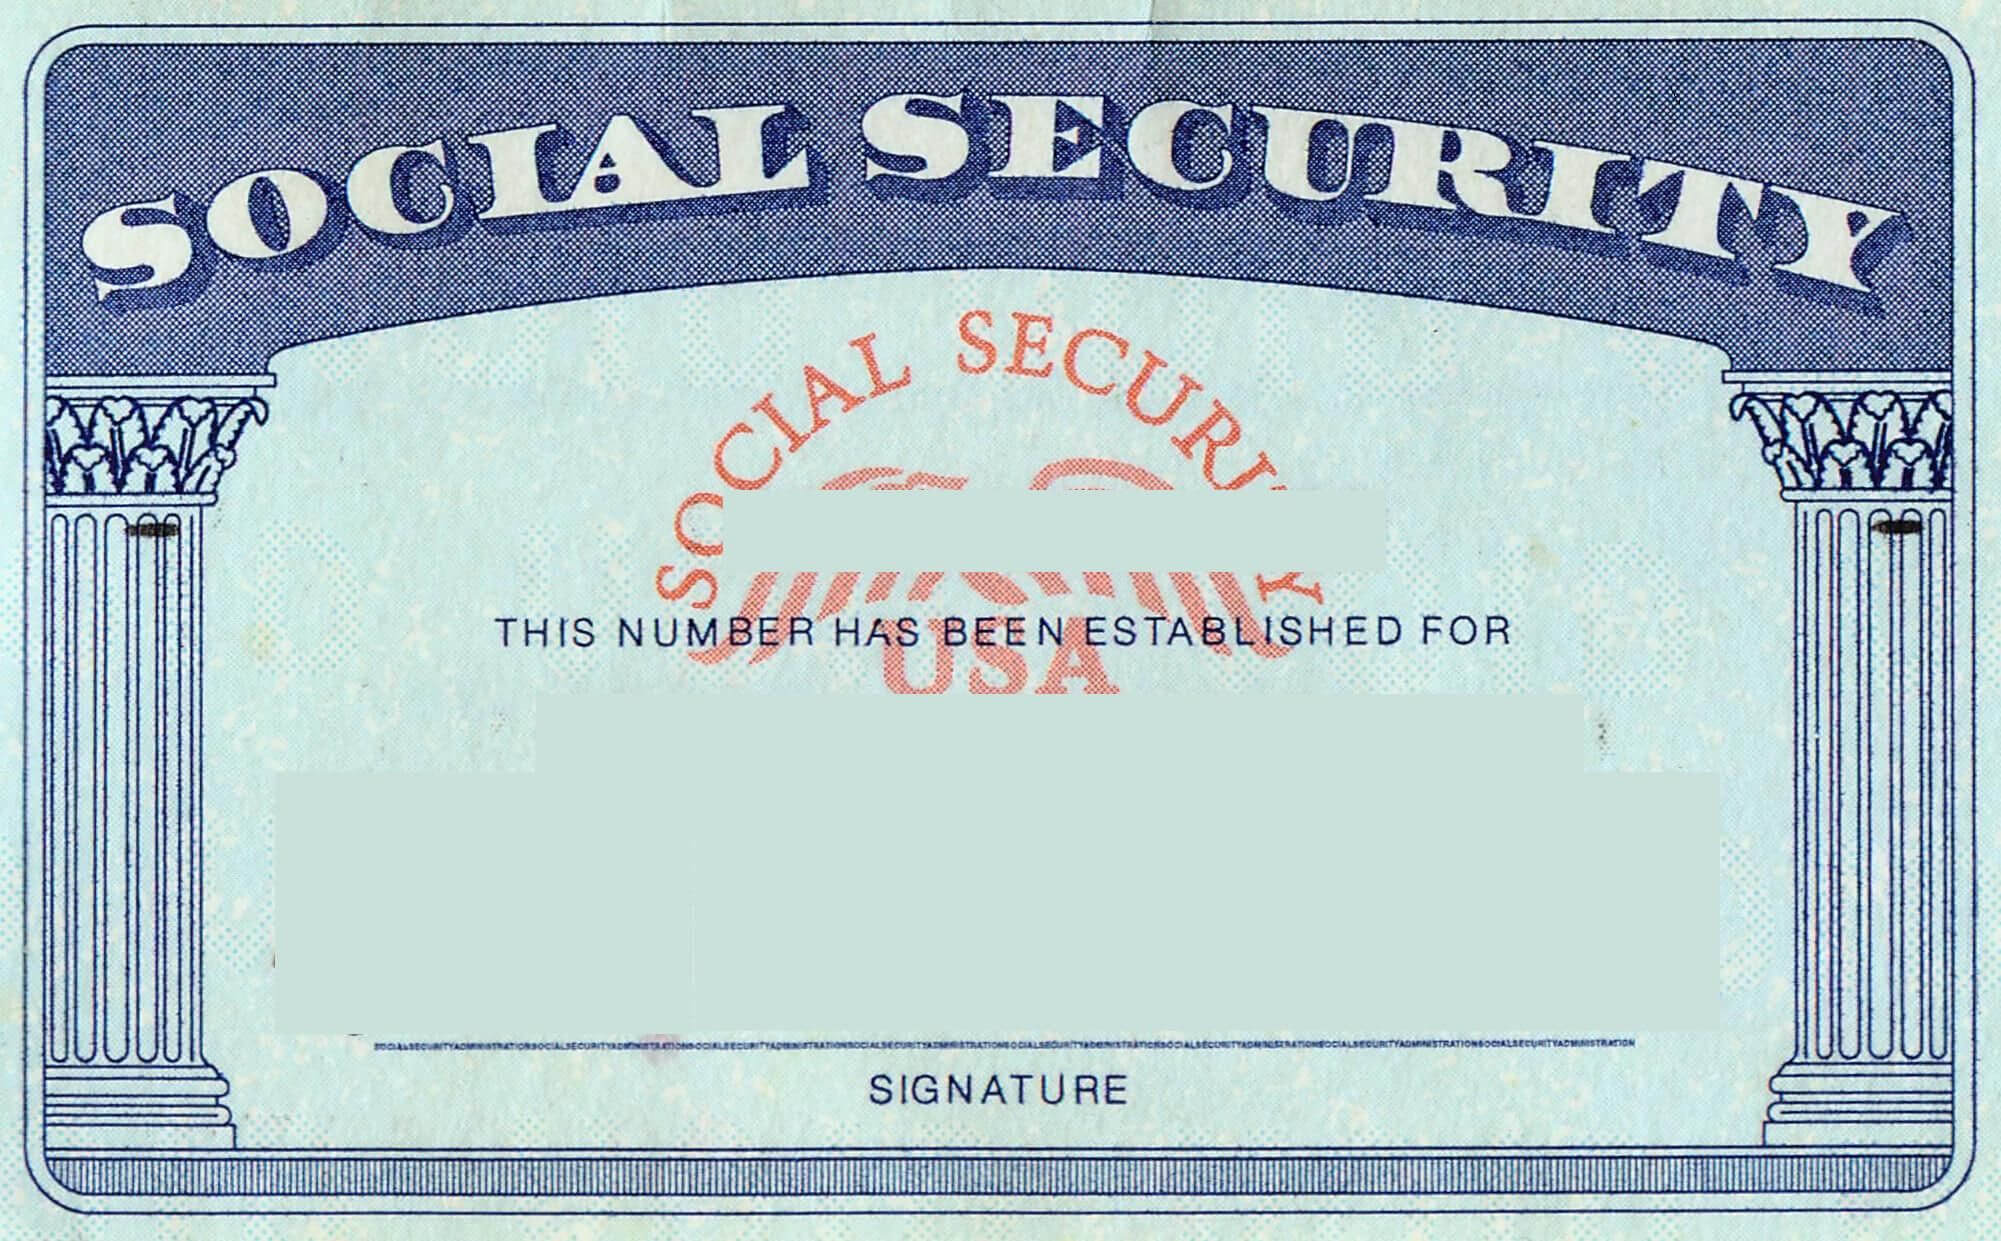 Blank Social Security Card Template | Social Security Card pertaining to Social Security Card Template Psd